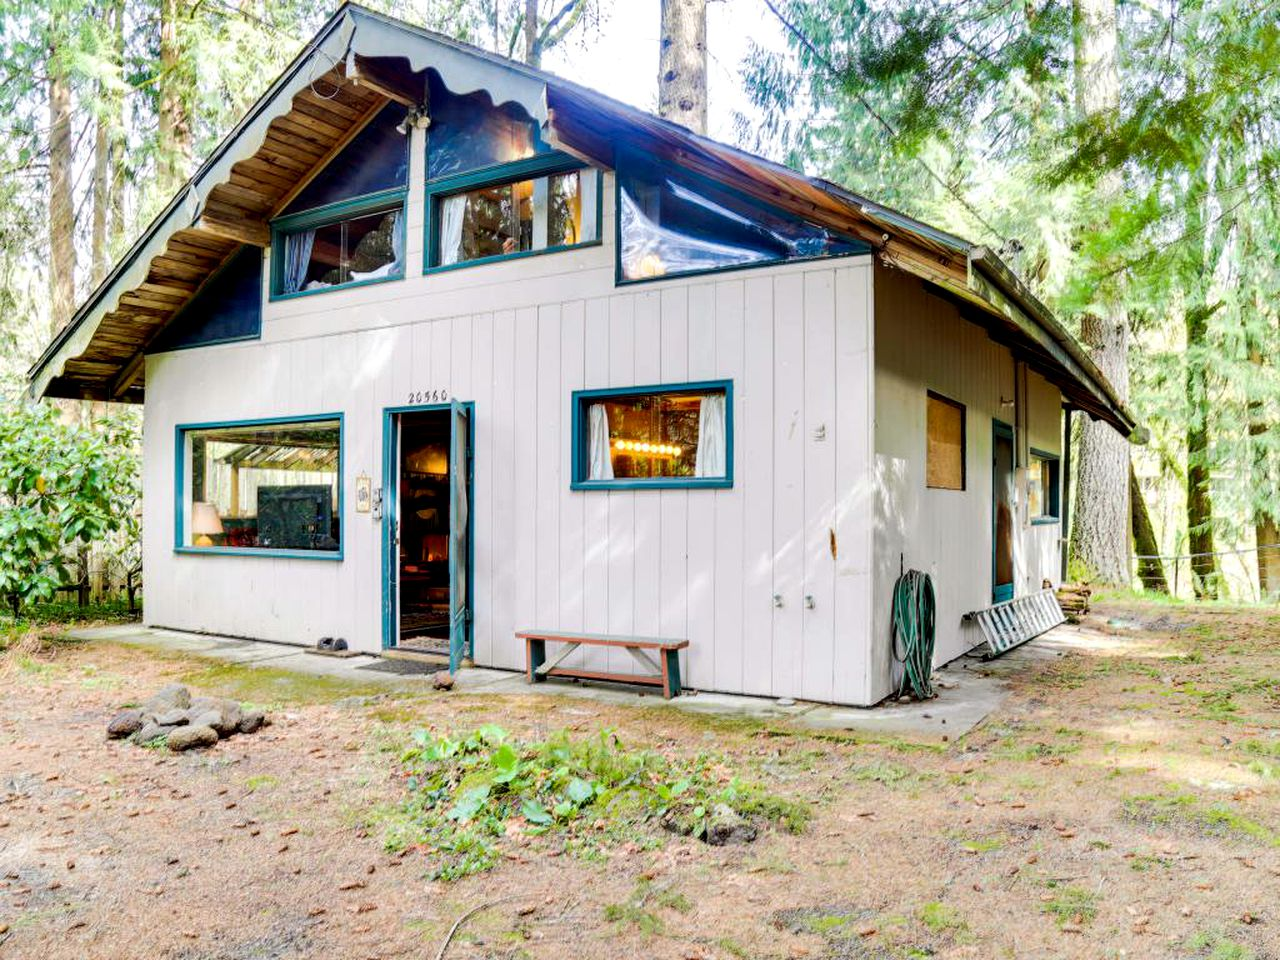 Cabins (Brightwood, Oregon, United States)